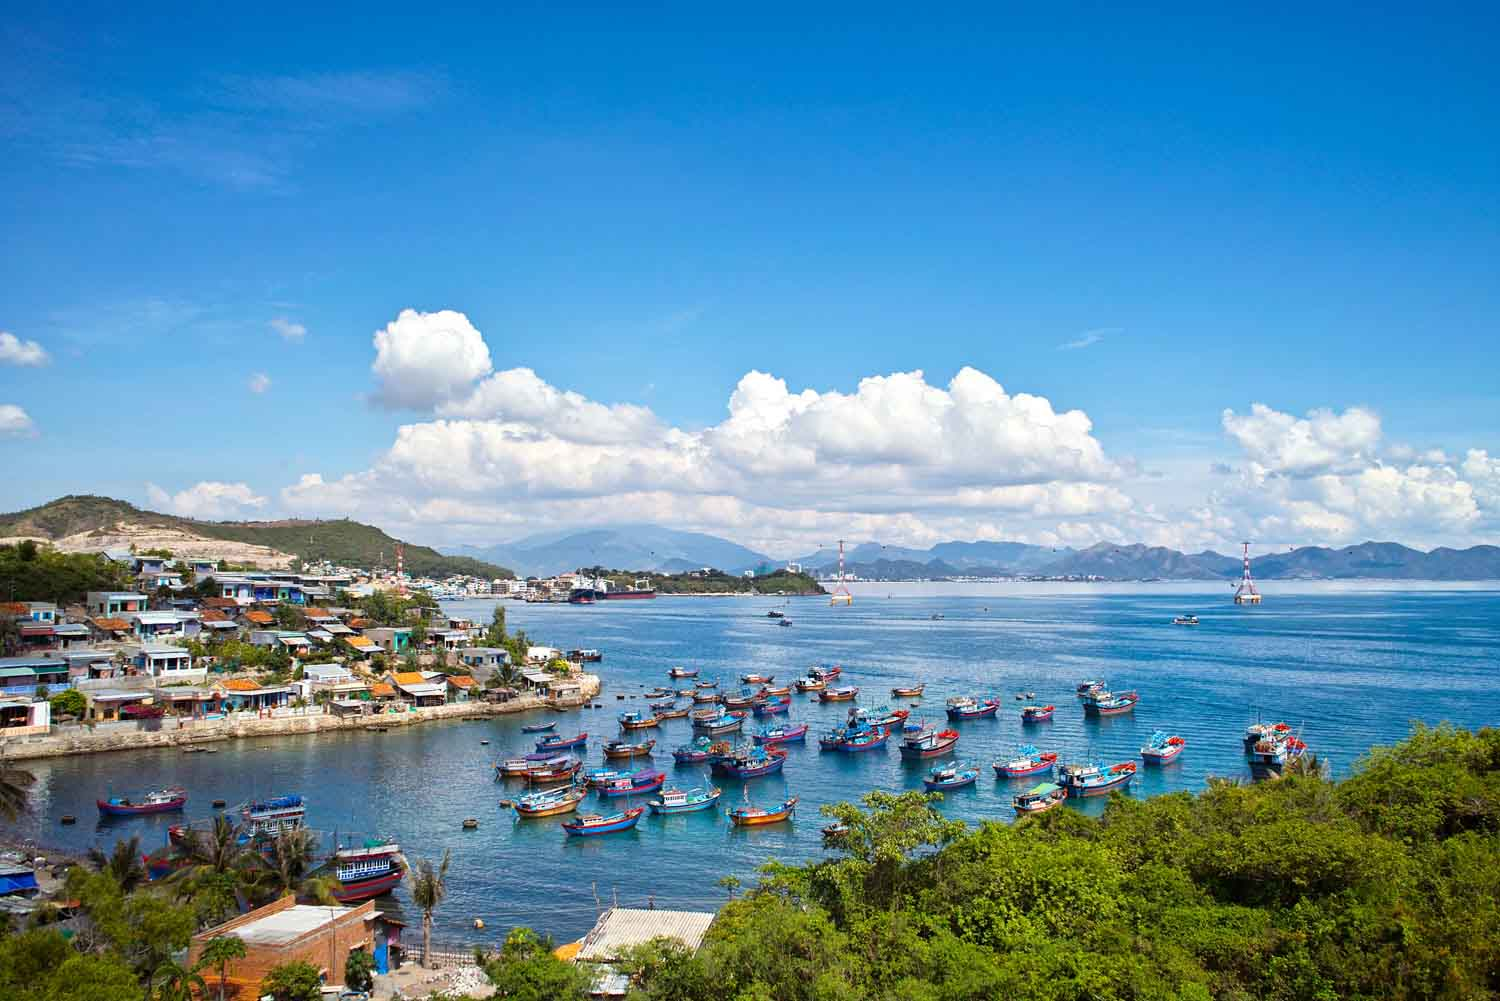 Nha Trang is one of the most favorite tourist attractions in Vietnam 1